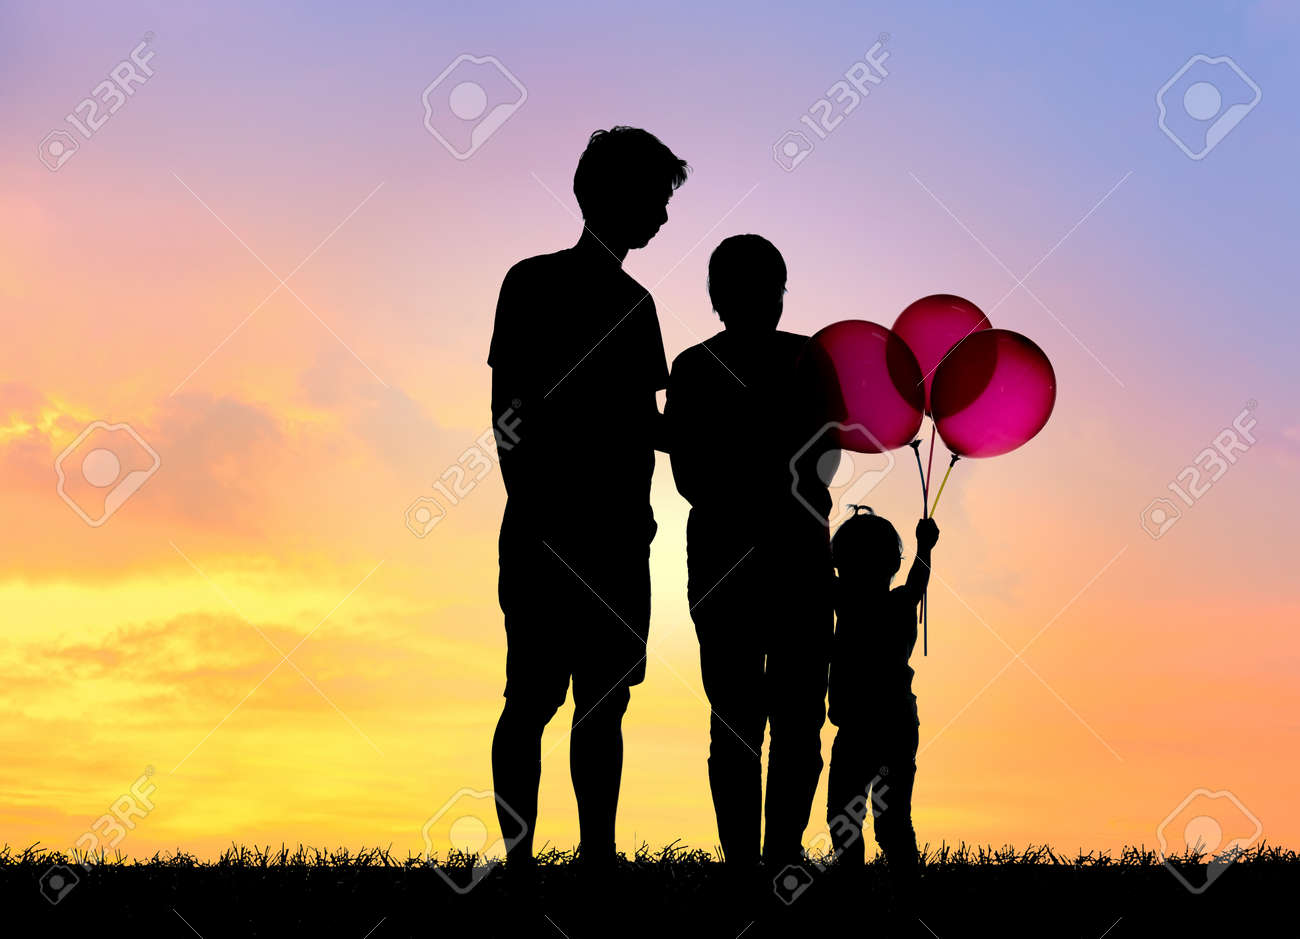 Silhouette family,father, mother and children holding balls against the sunset. - 137522969